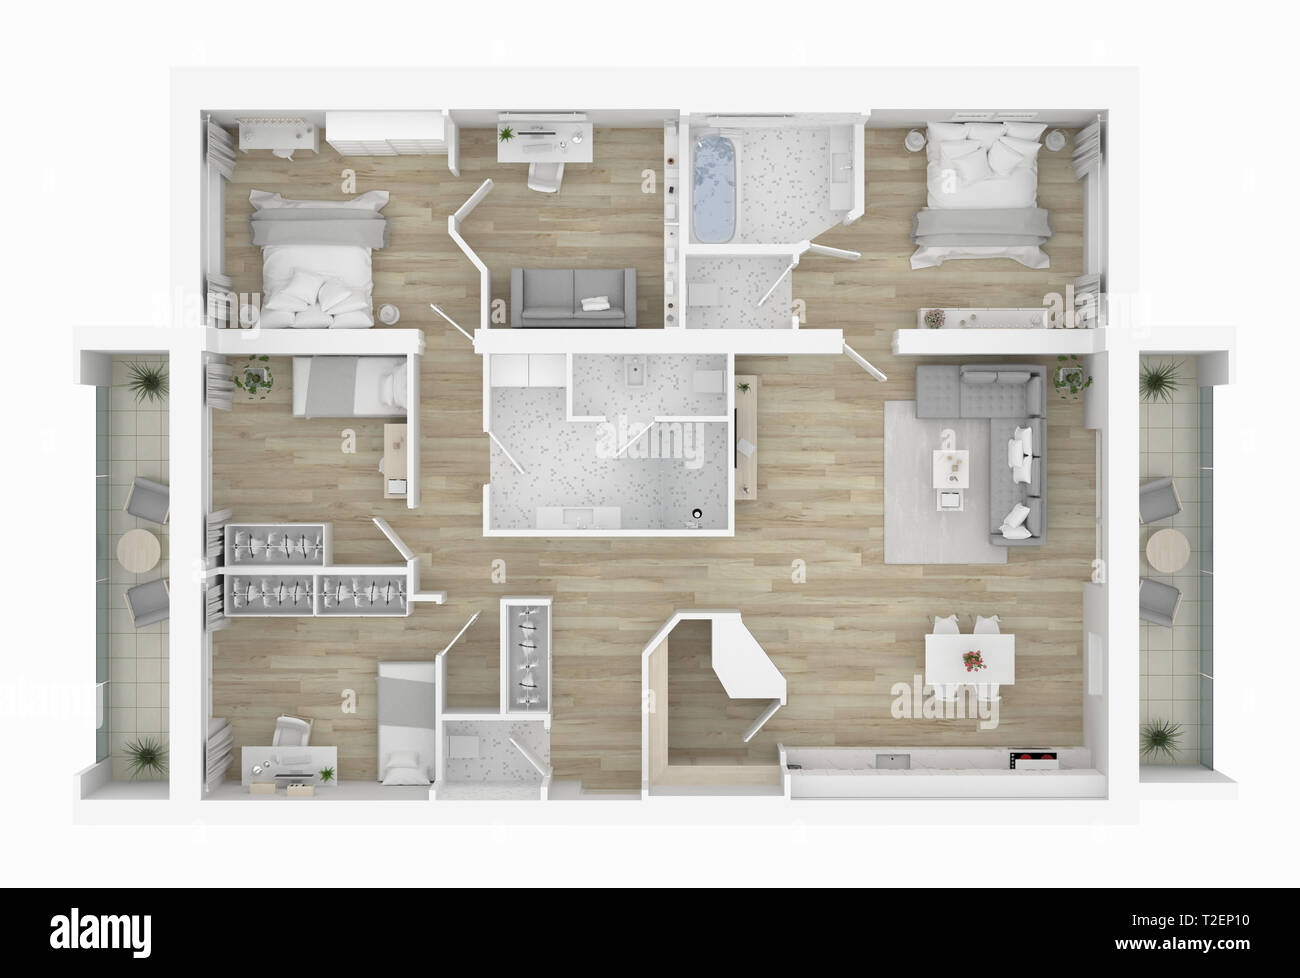 3d Floor Plan Of A Home 3d Illustration Open Concept Living Apartment Layout Stock Photo Alamy